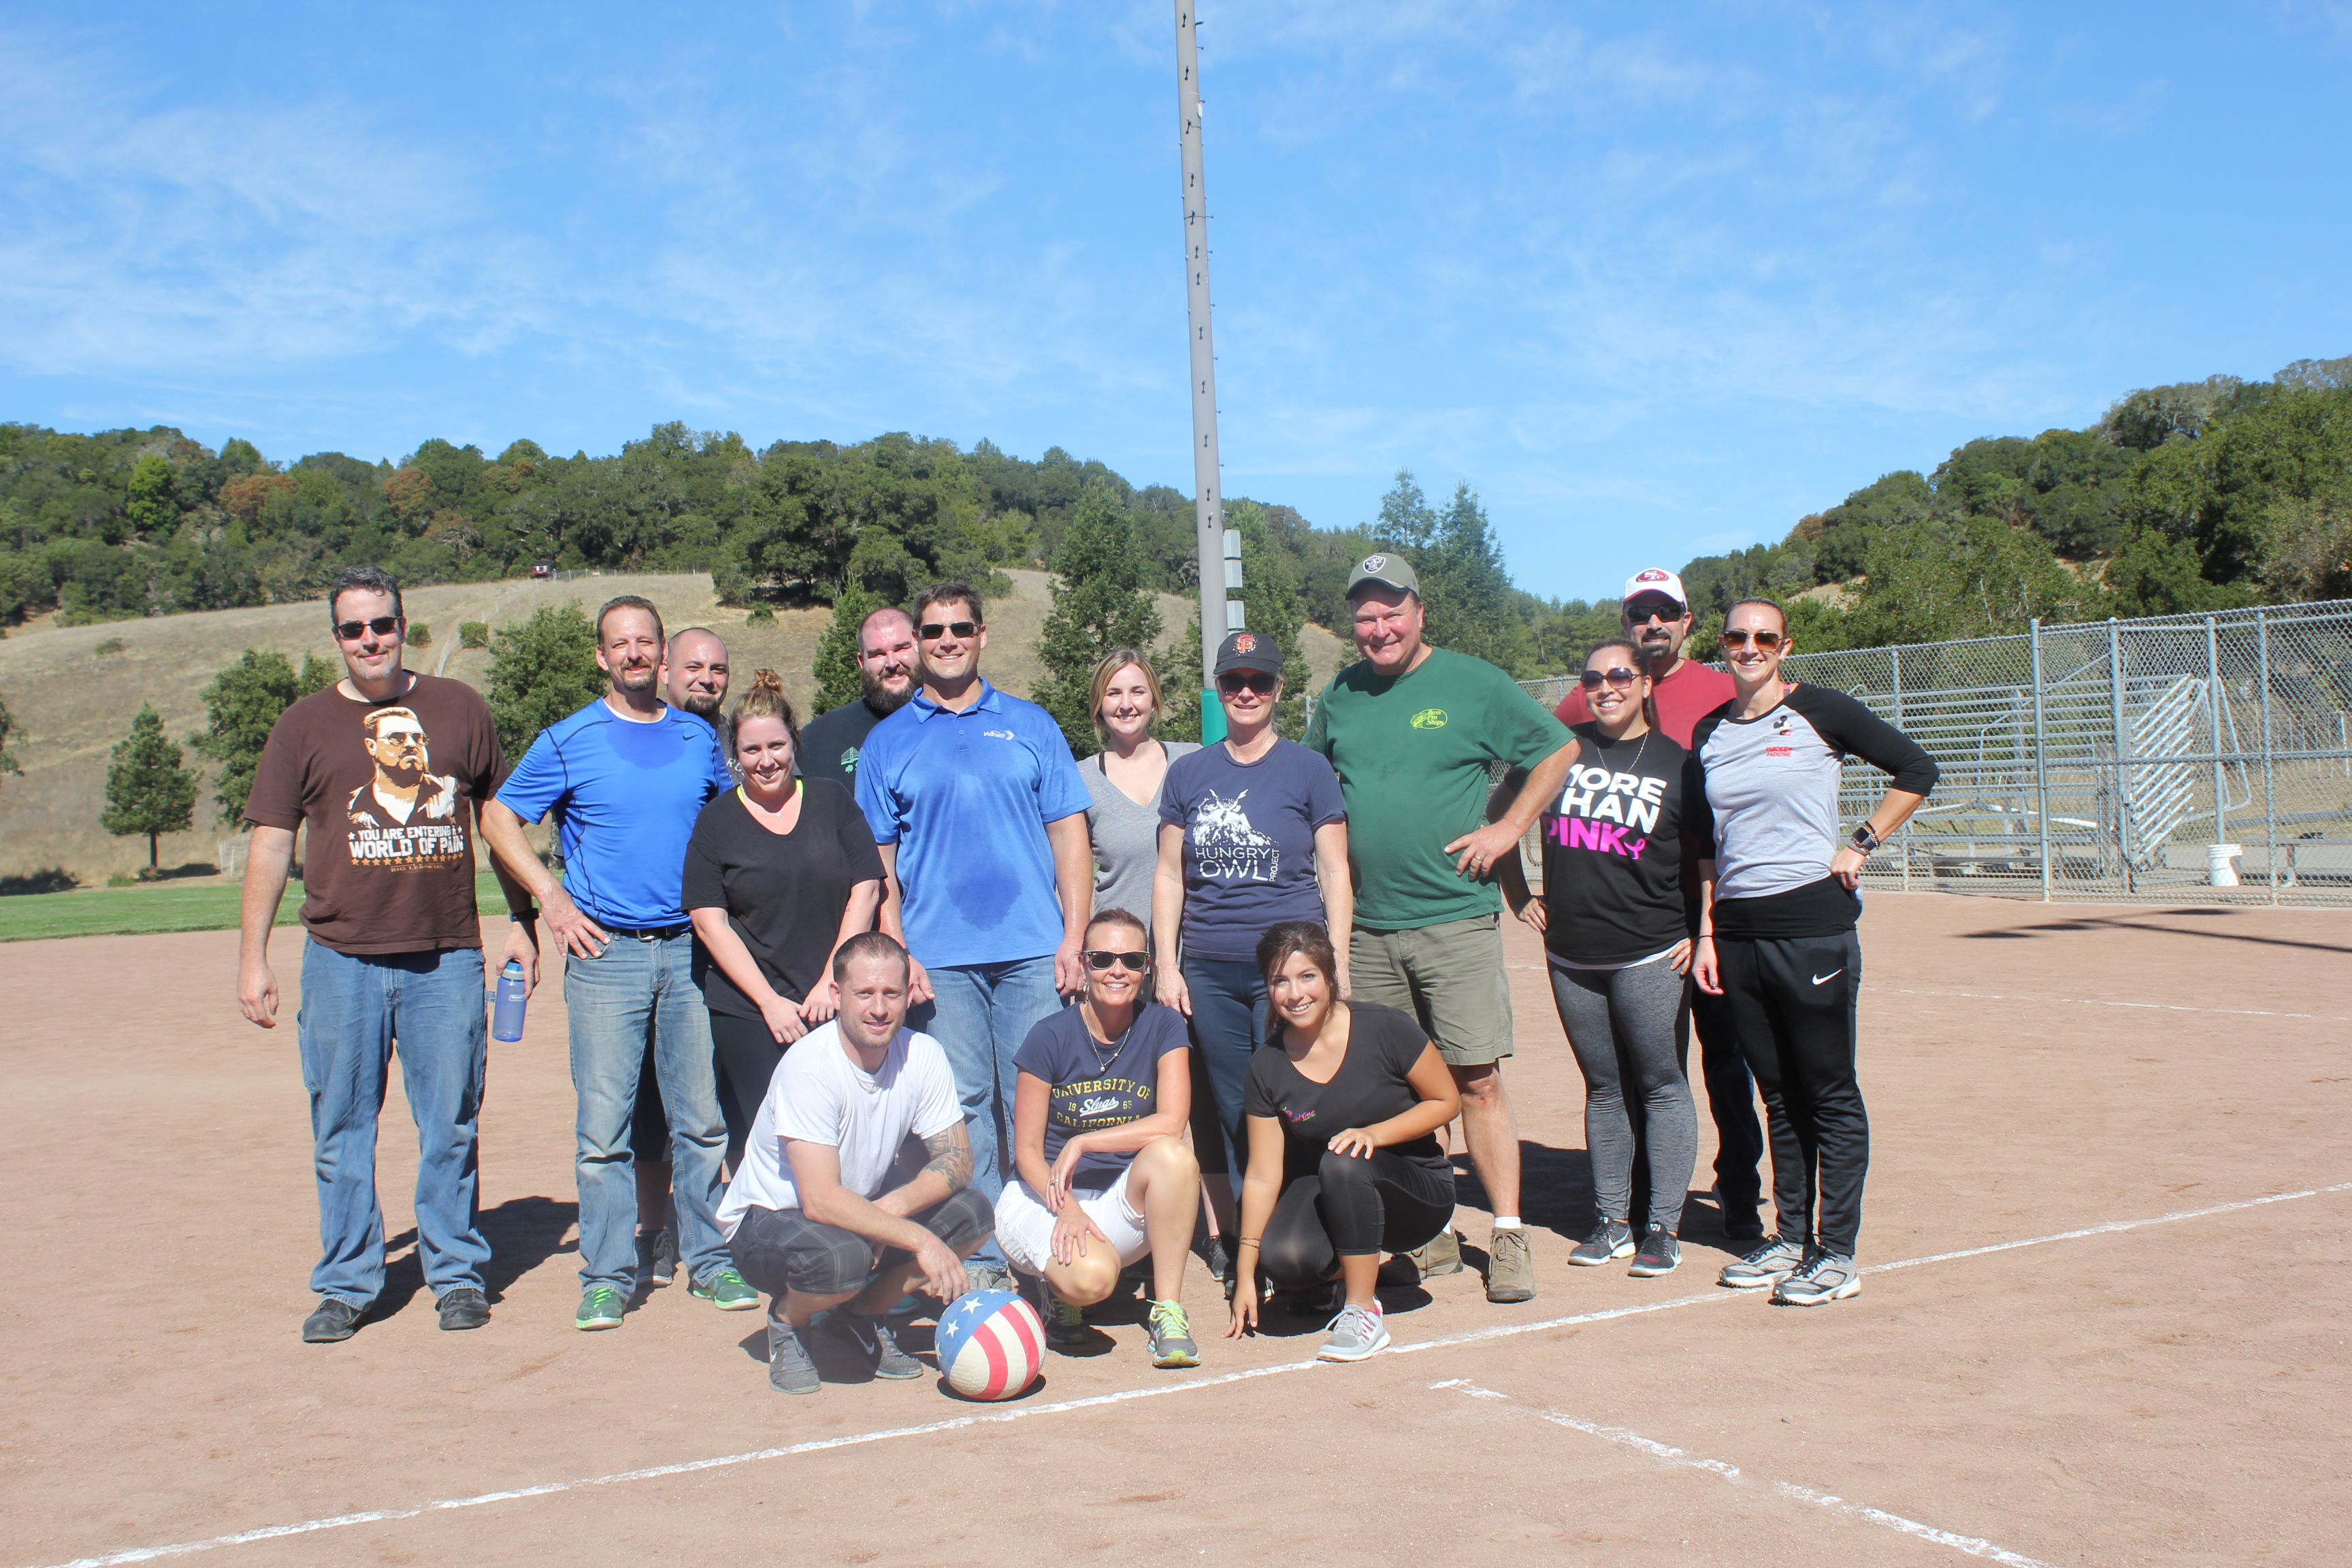 Millenials vs. GenX/Baby Boomers kickball tournament 2017